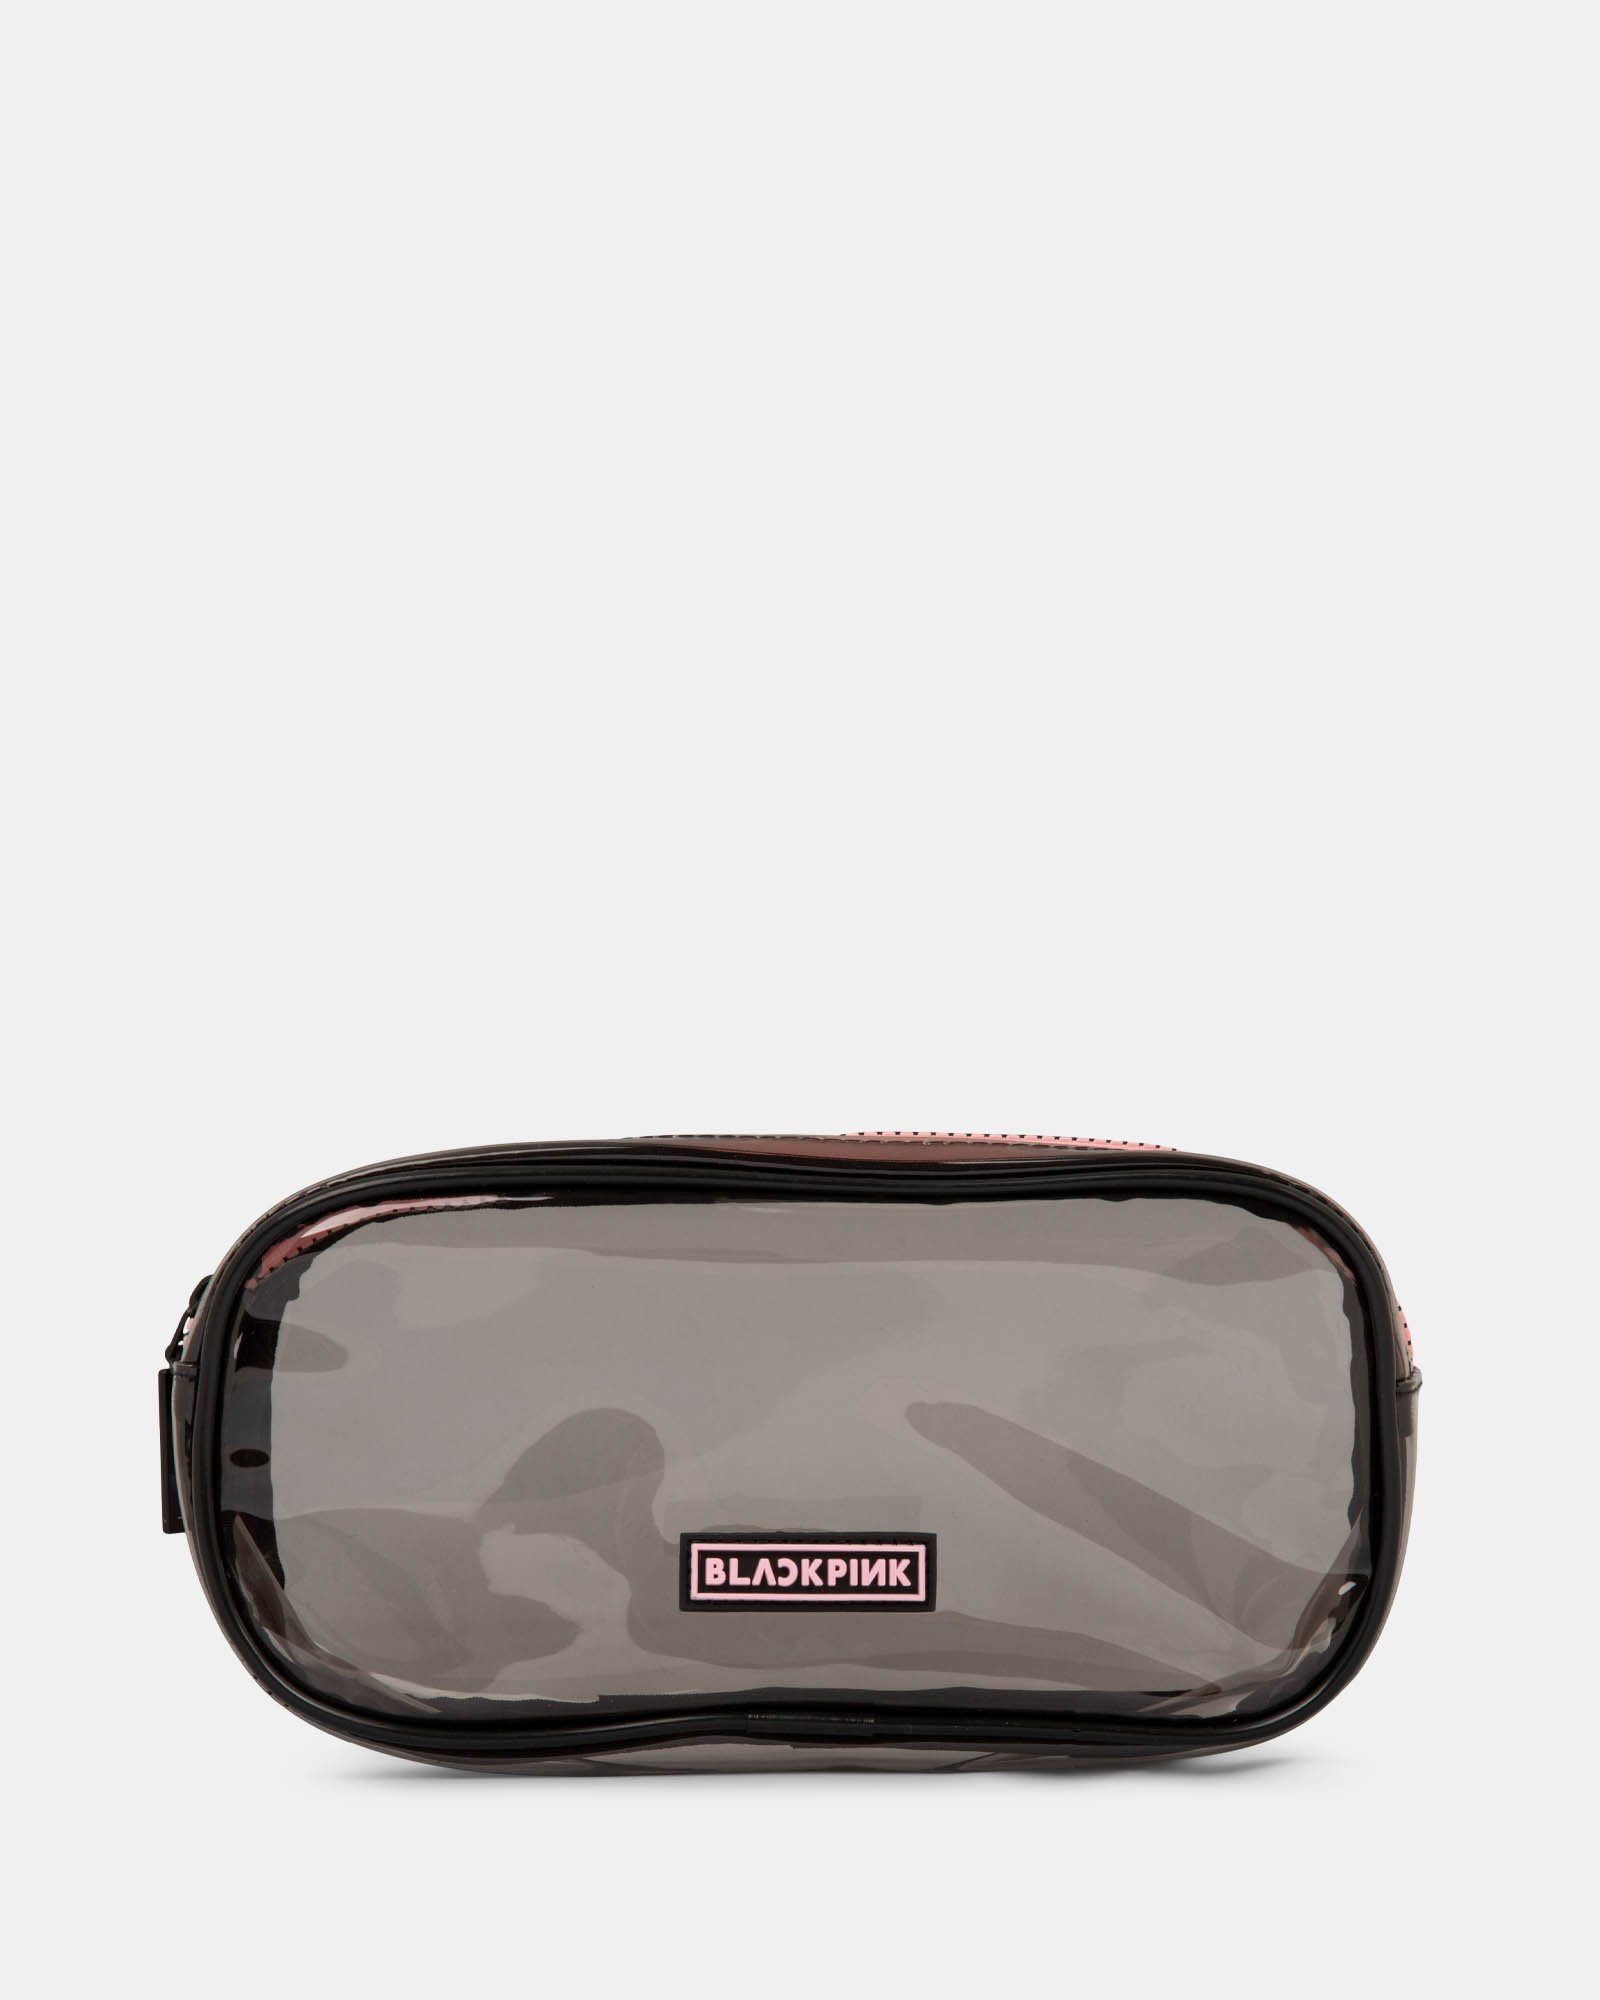 Blackpink - Clearly You Collection - black-tinted see-through pencil case with a pink zipper - Black - BLACKPINK - Zoom